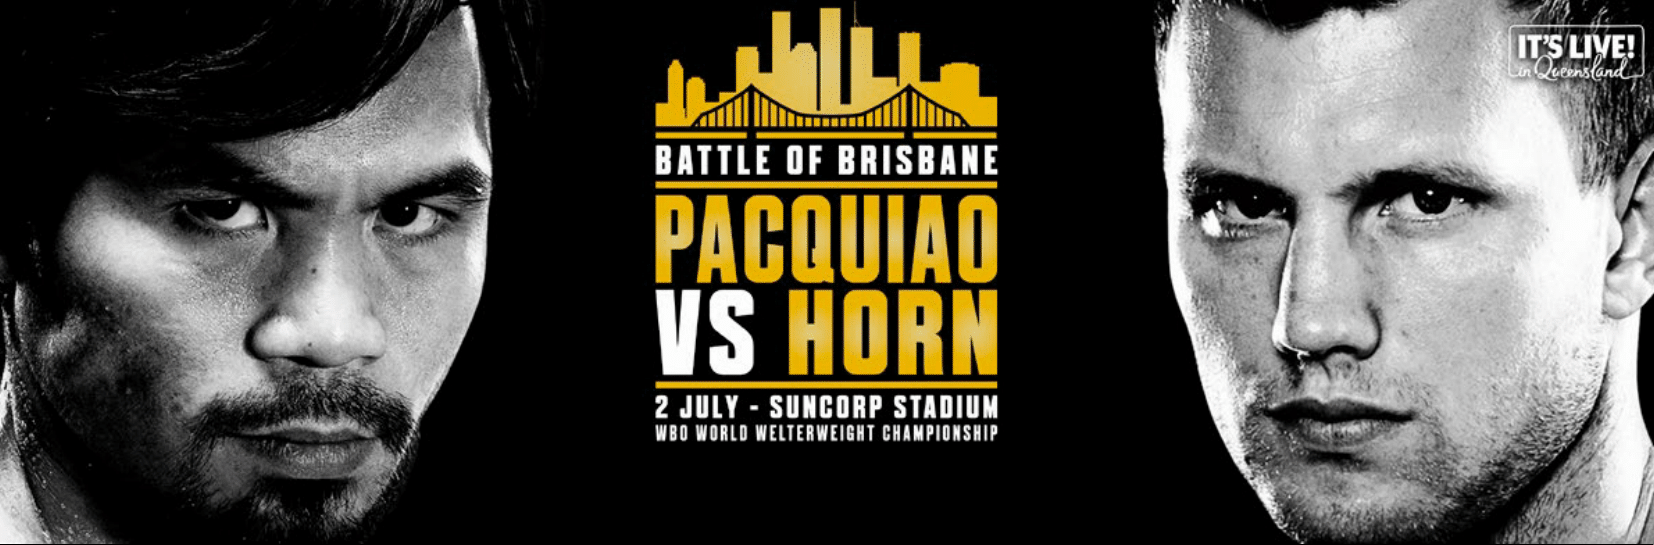 Pacquiao-vs-Horn-banner-Large